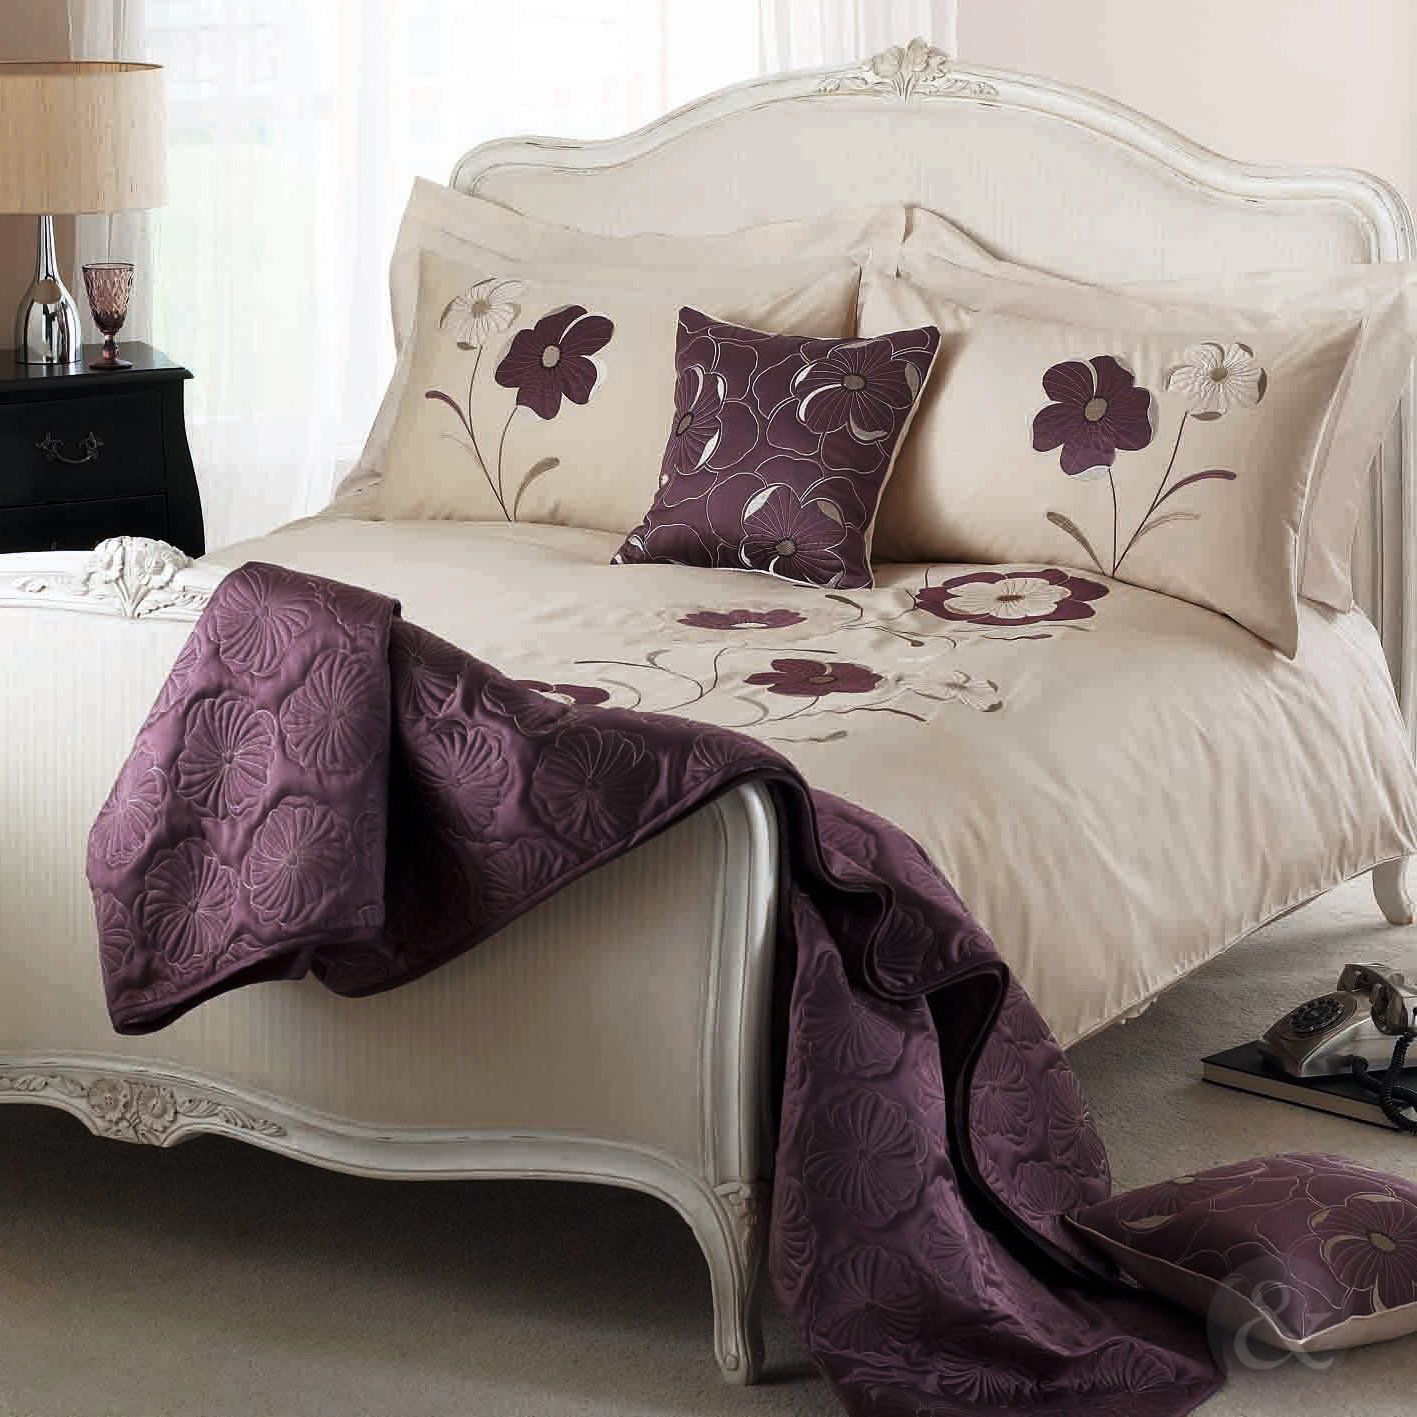 ELEGANT FLORAL DUVET COVER Cotton Blend Embroidered